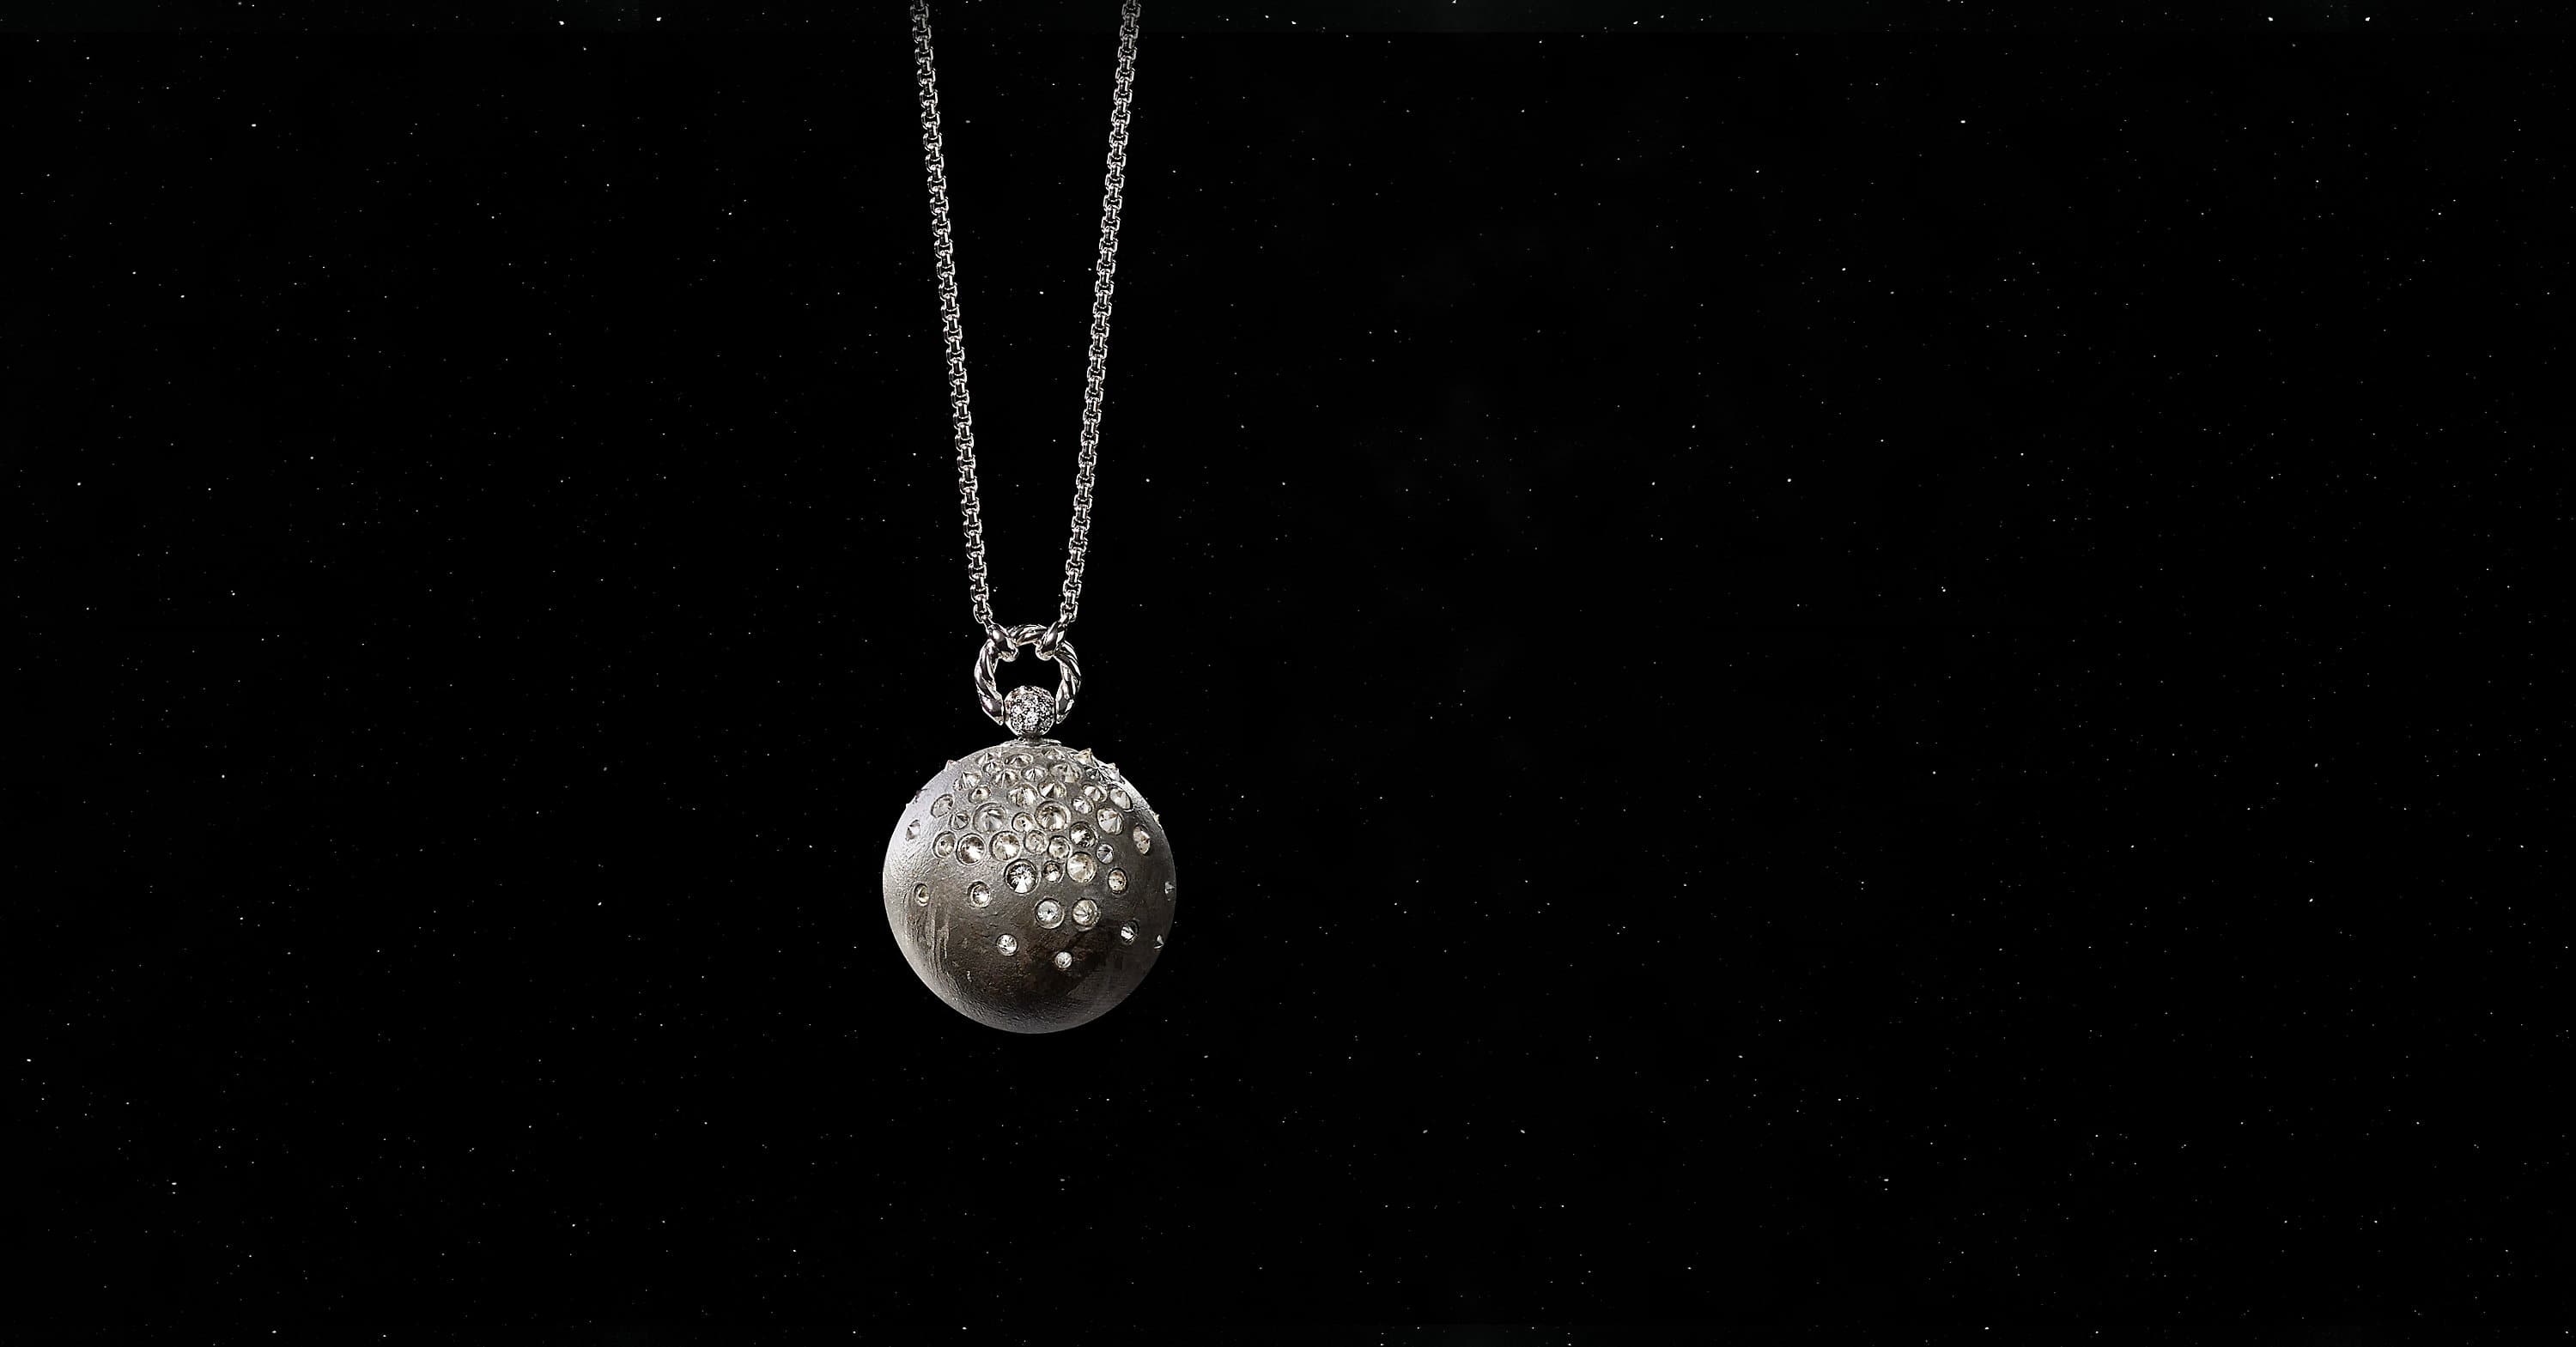 Solari Mercury Pendant in 18K White Gold with Pavé